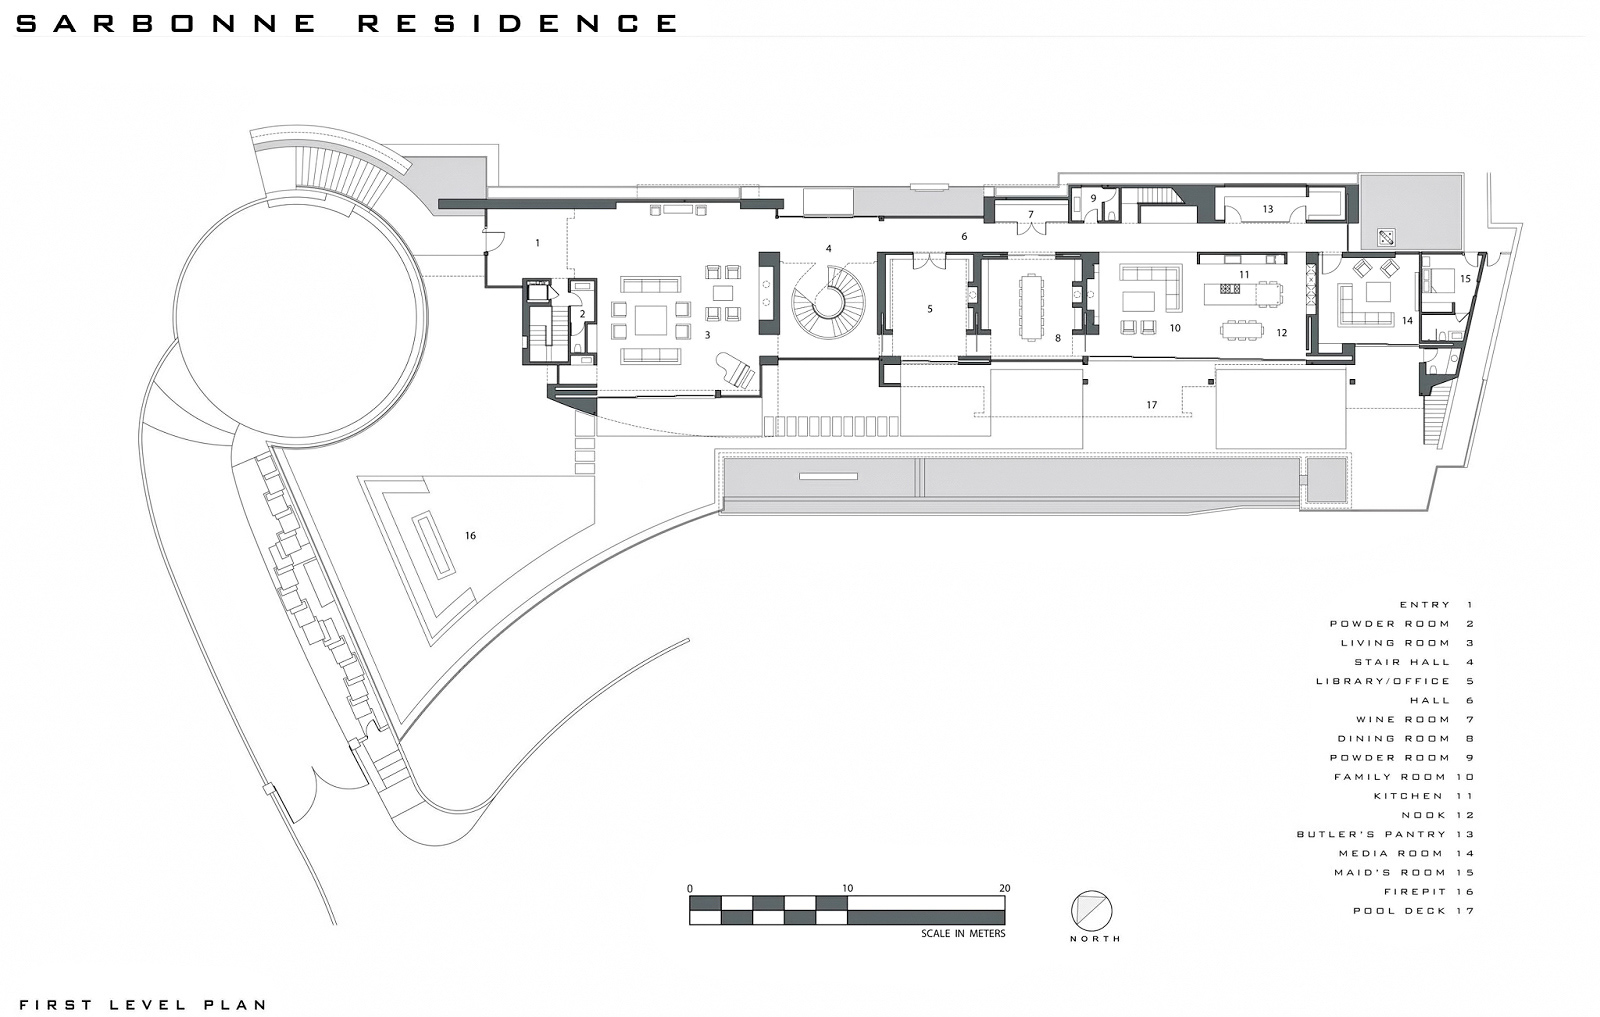 First Level Floor Plan - Bel Air Residence - 755 Sarbonne Rd, Los Angeles, CA, USA